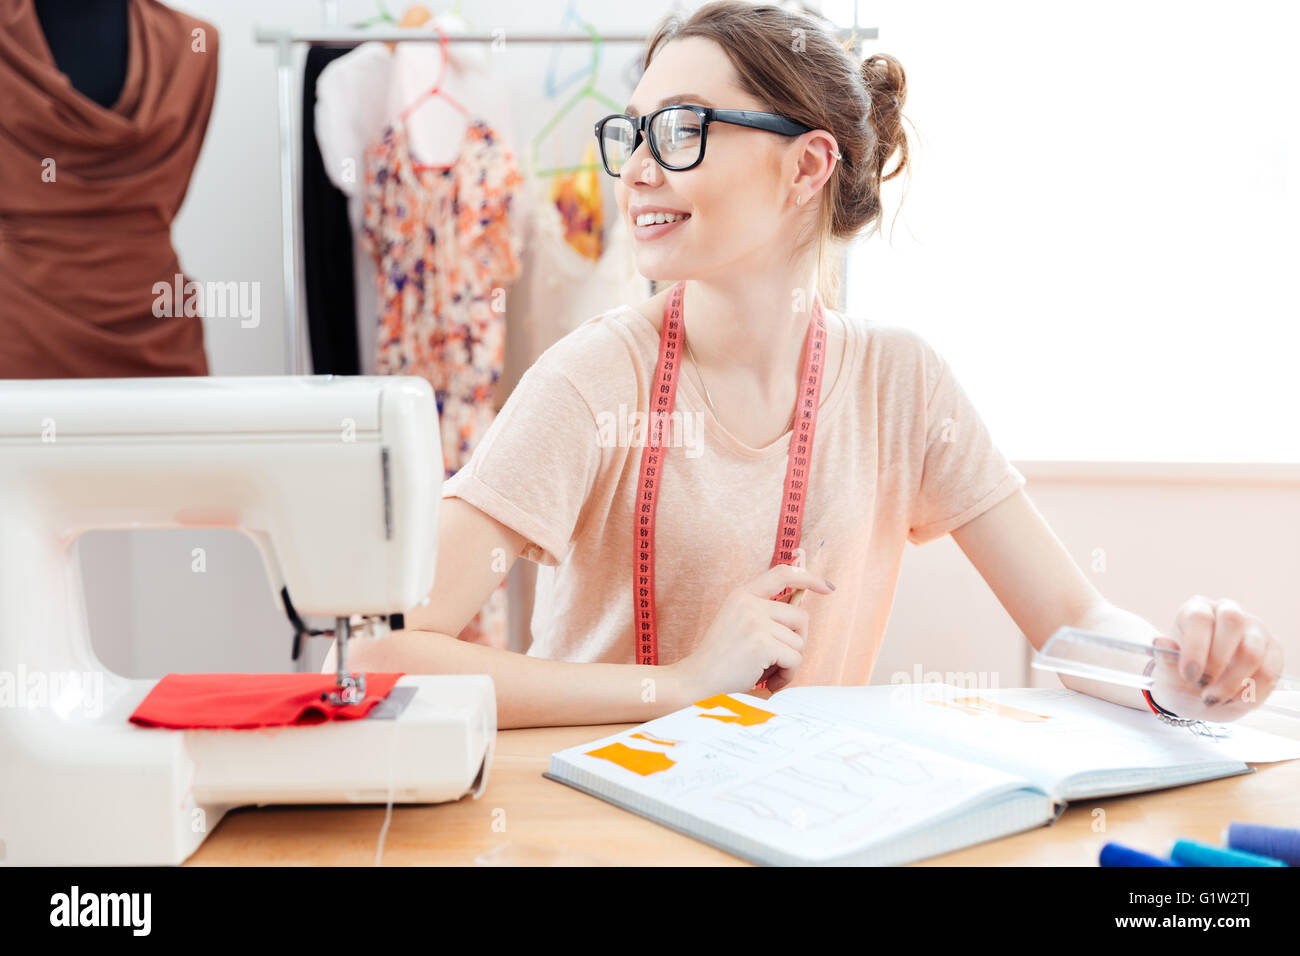 Smiling pretty young professional seamstress at work - Stock Image